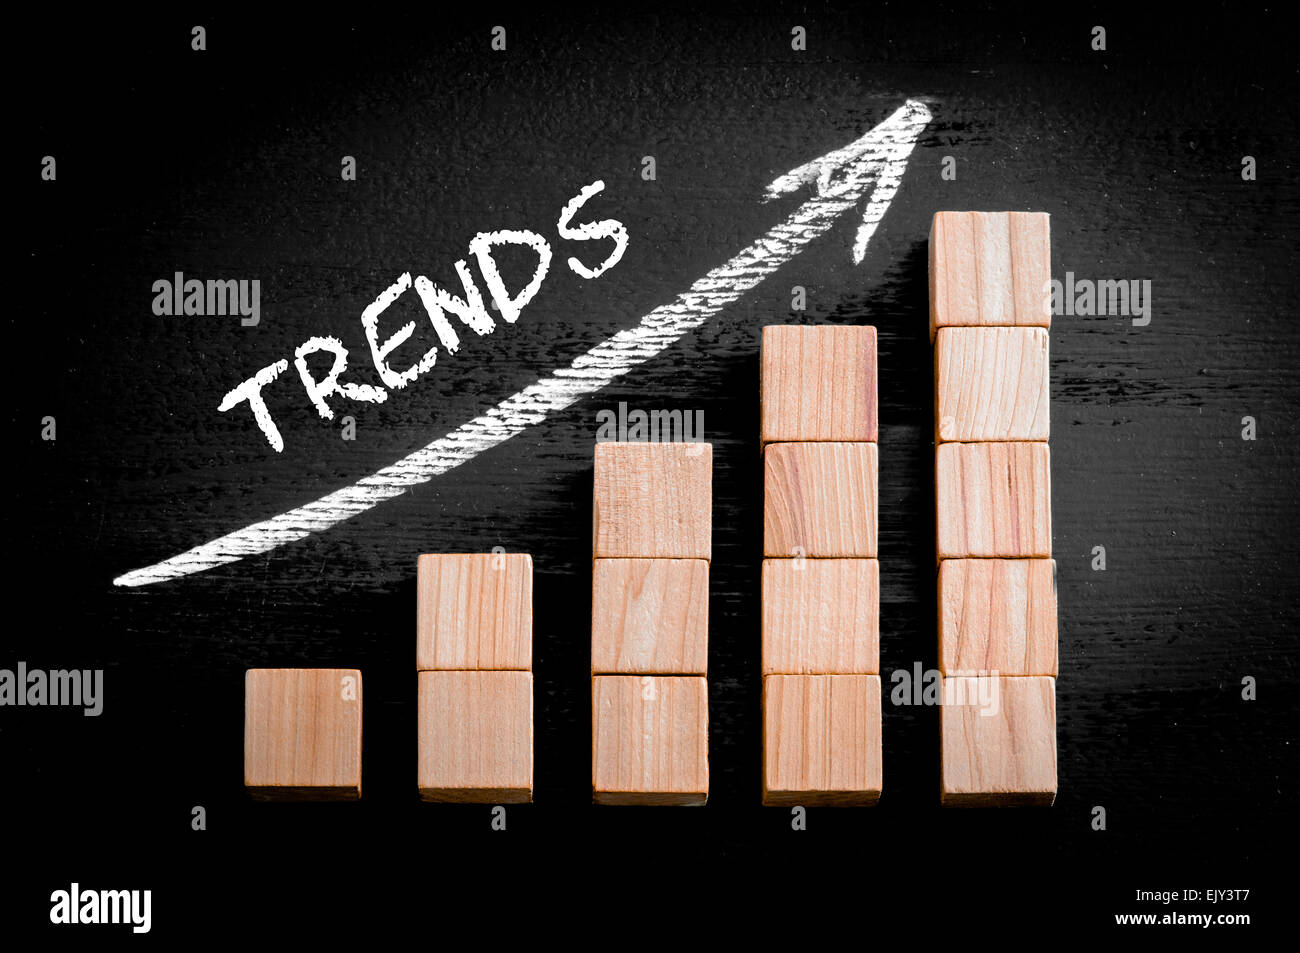 Word Trends on ascending arrow above bar graph of Wooden small cubes isolated on black background. Chalk drawing - Stock Image